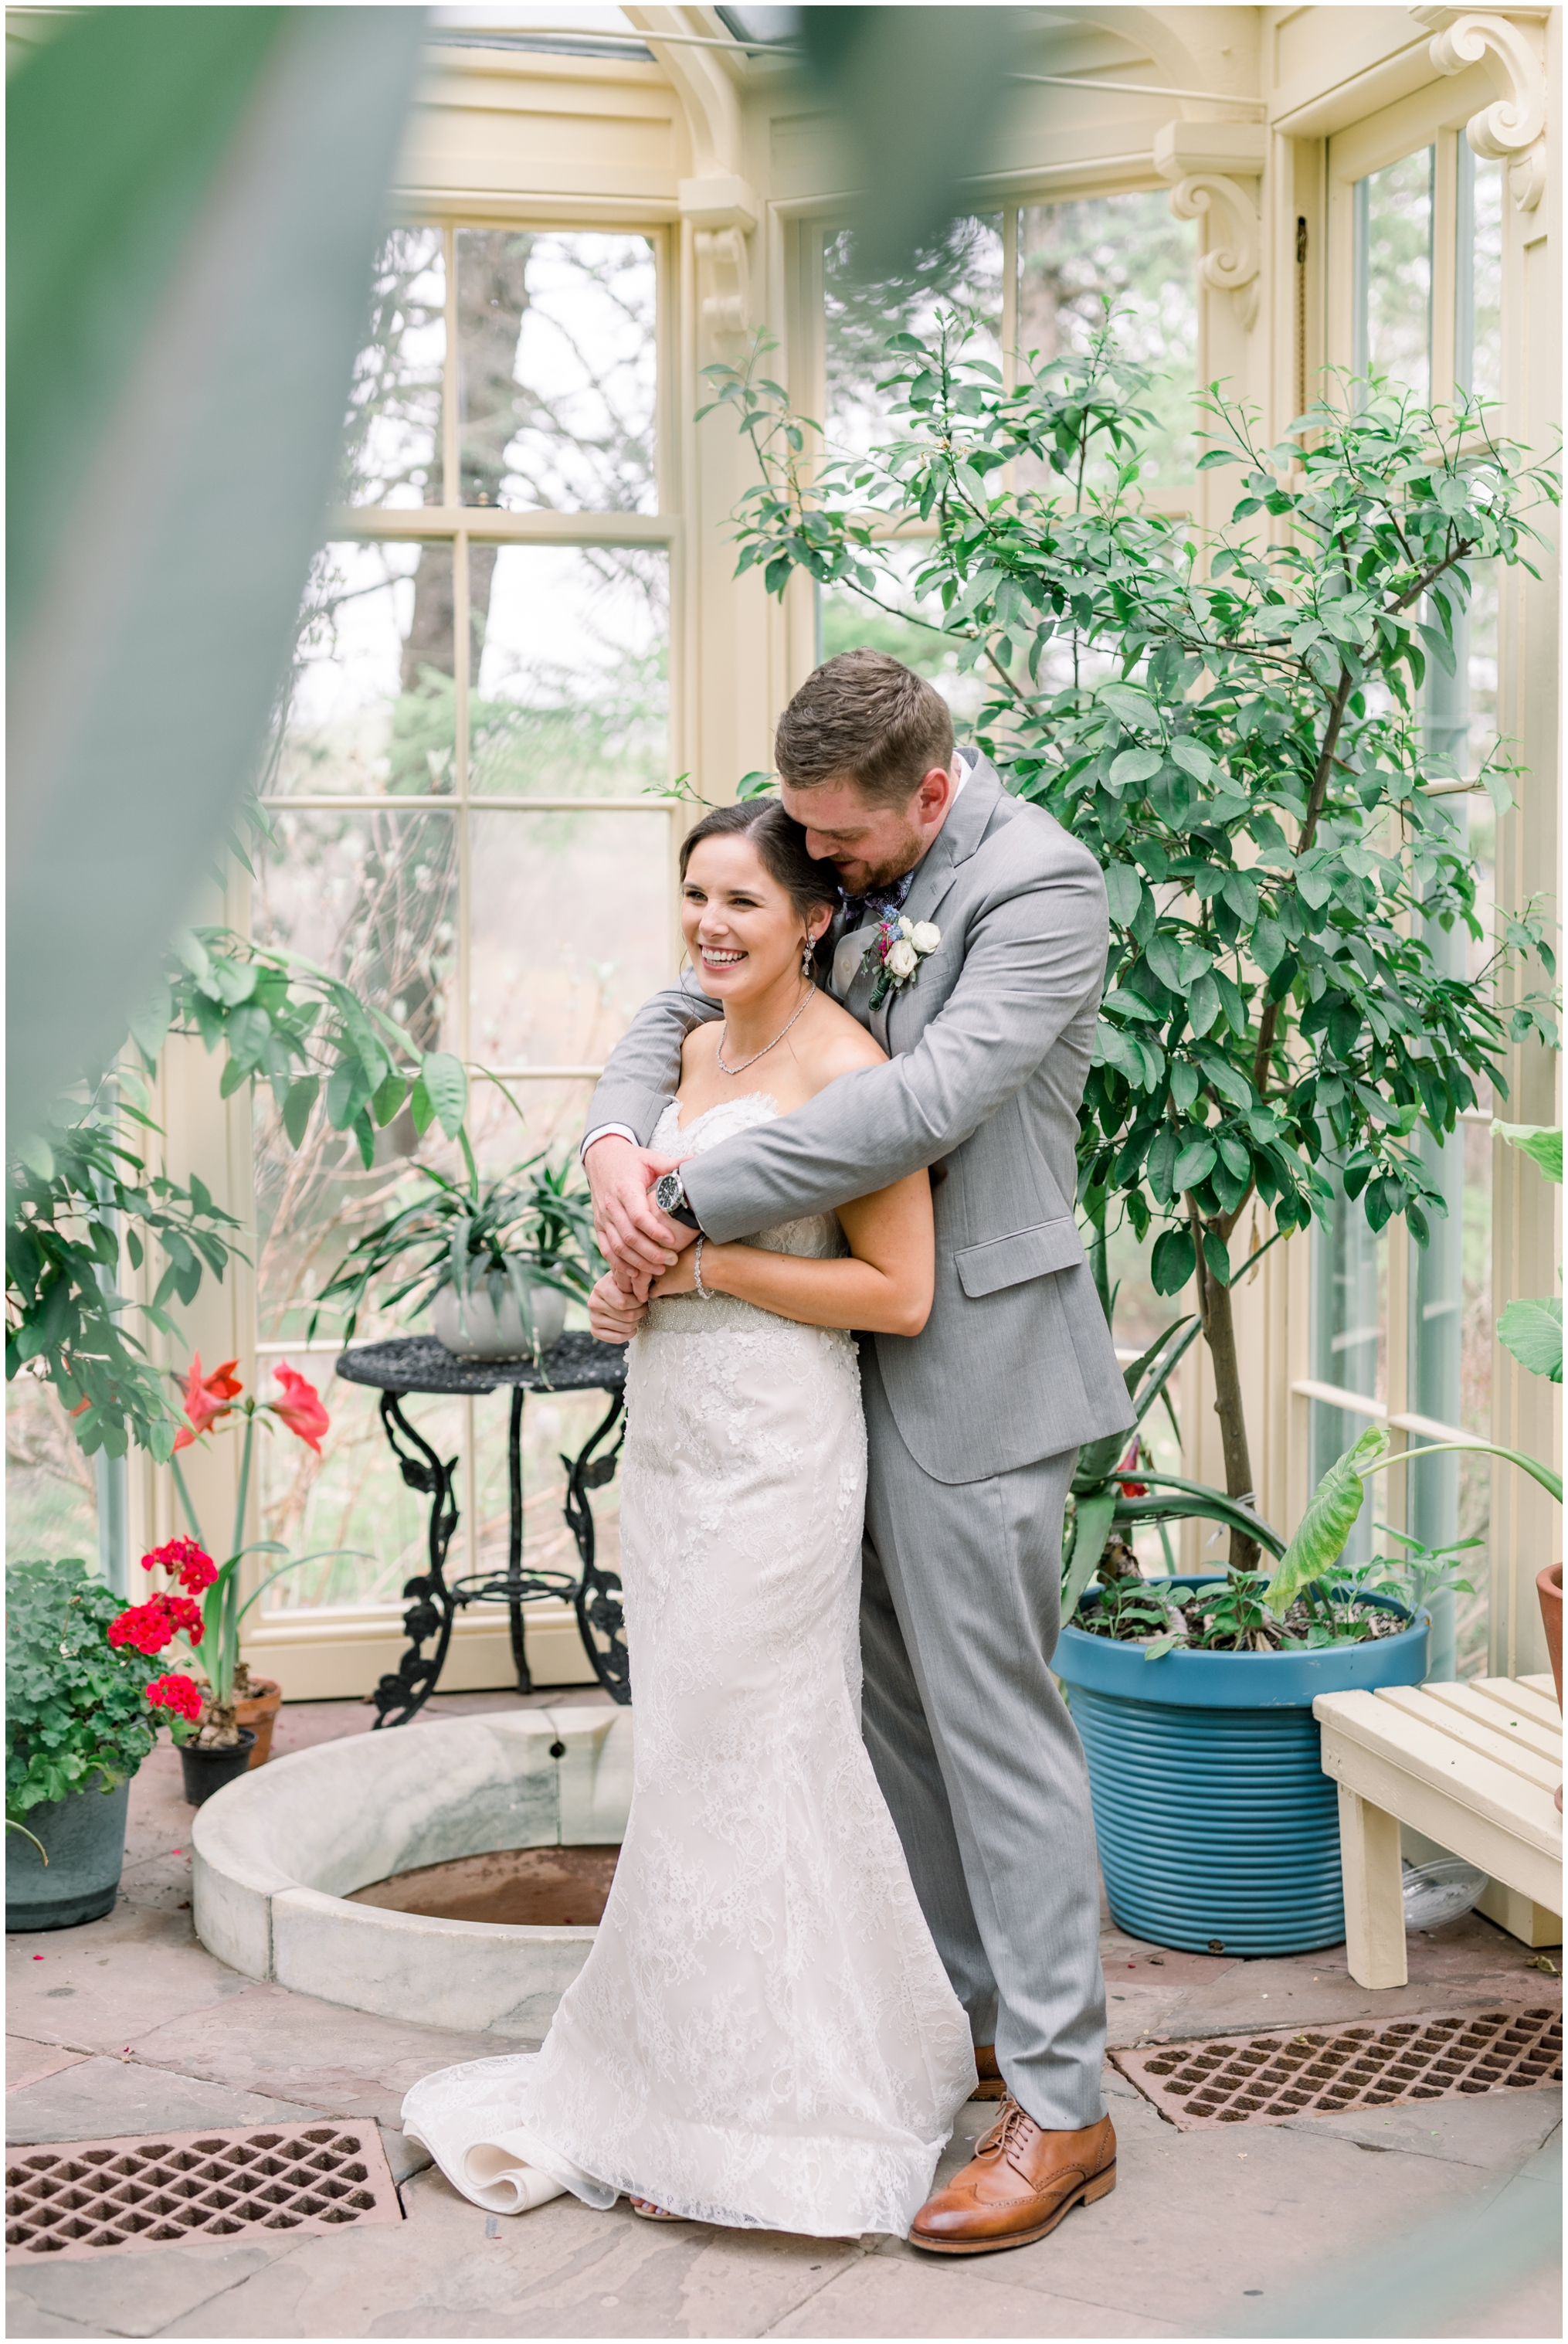 Krista Brackin Photography | April Wedding at The Carriage House at Rockwood Park_0080.jpg